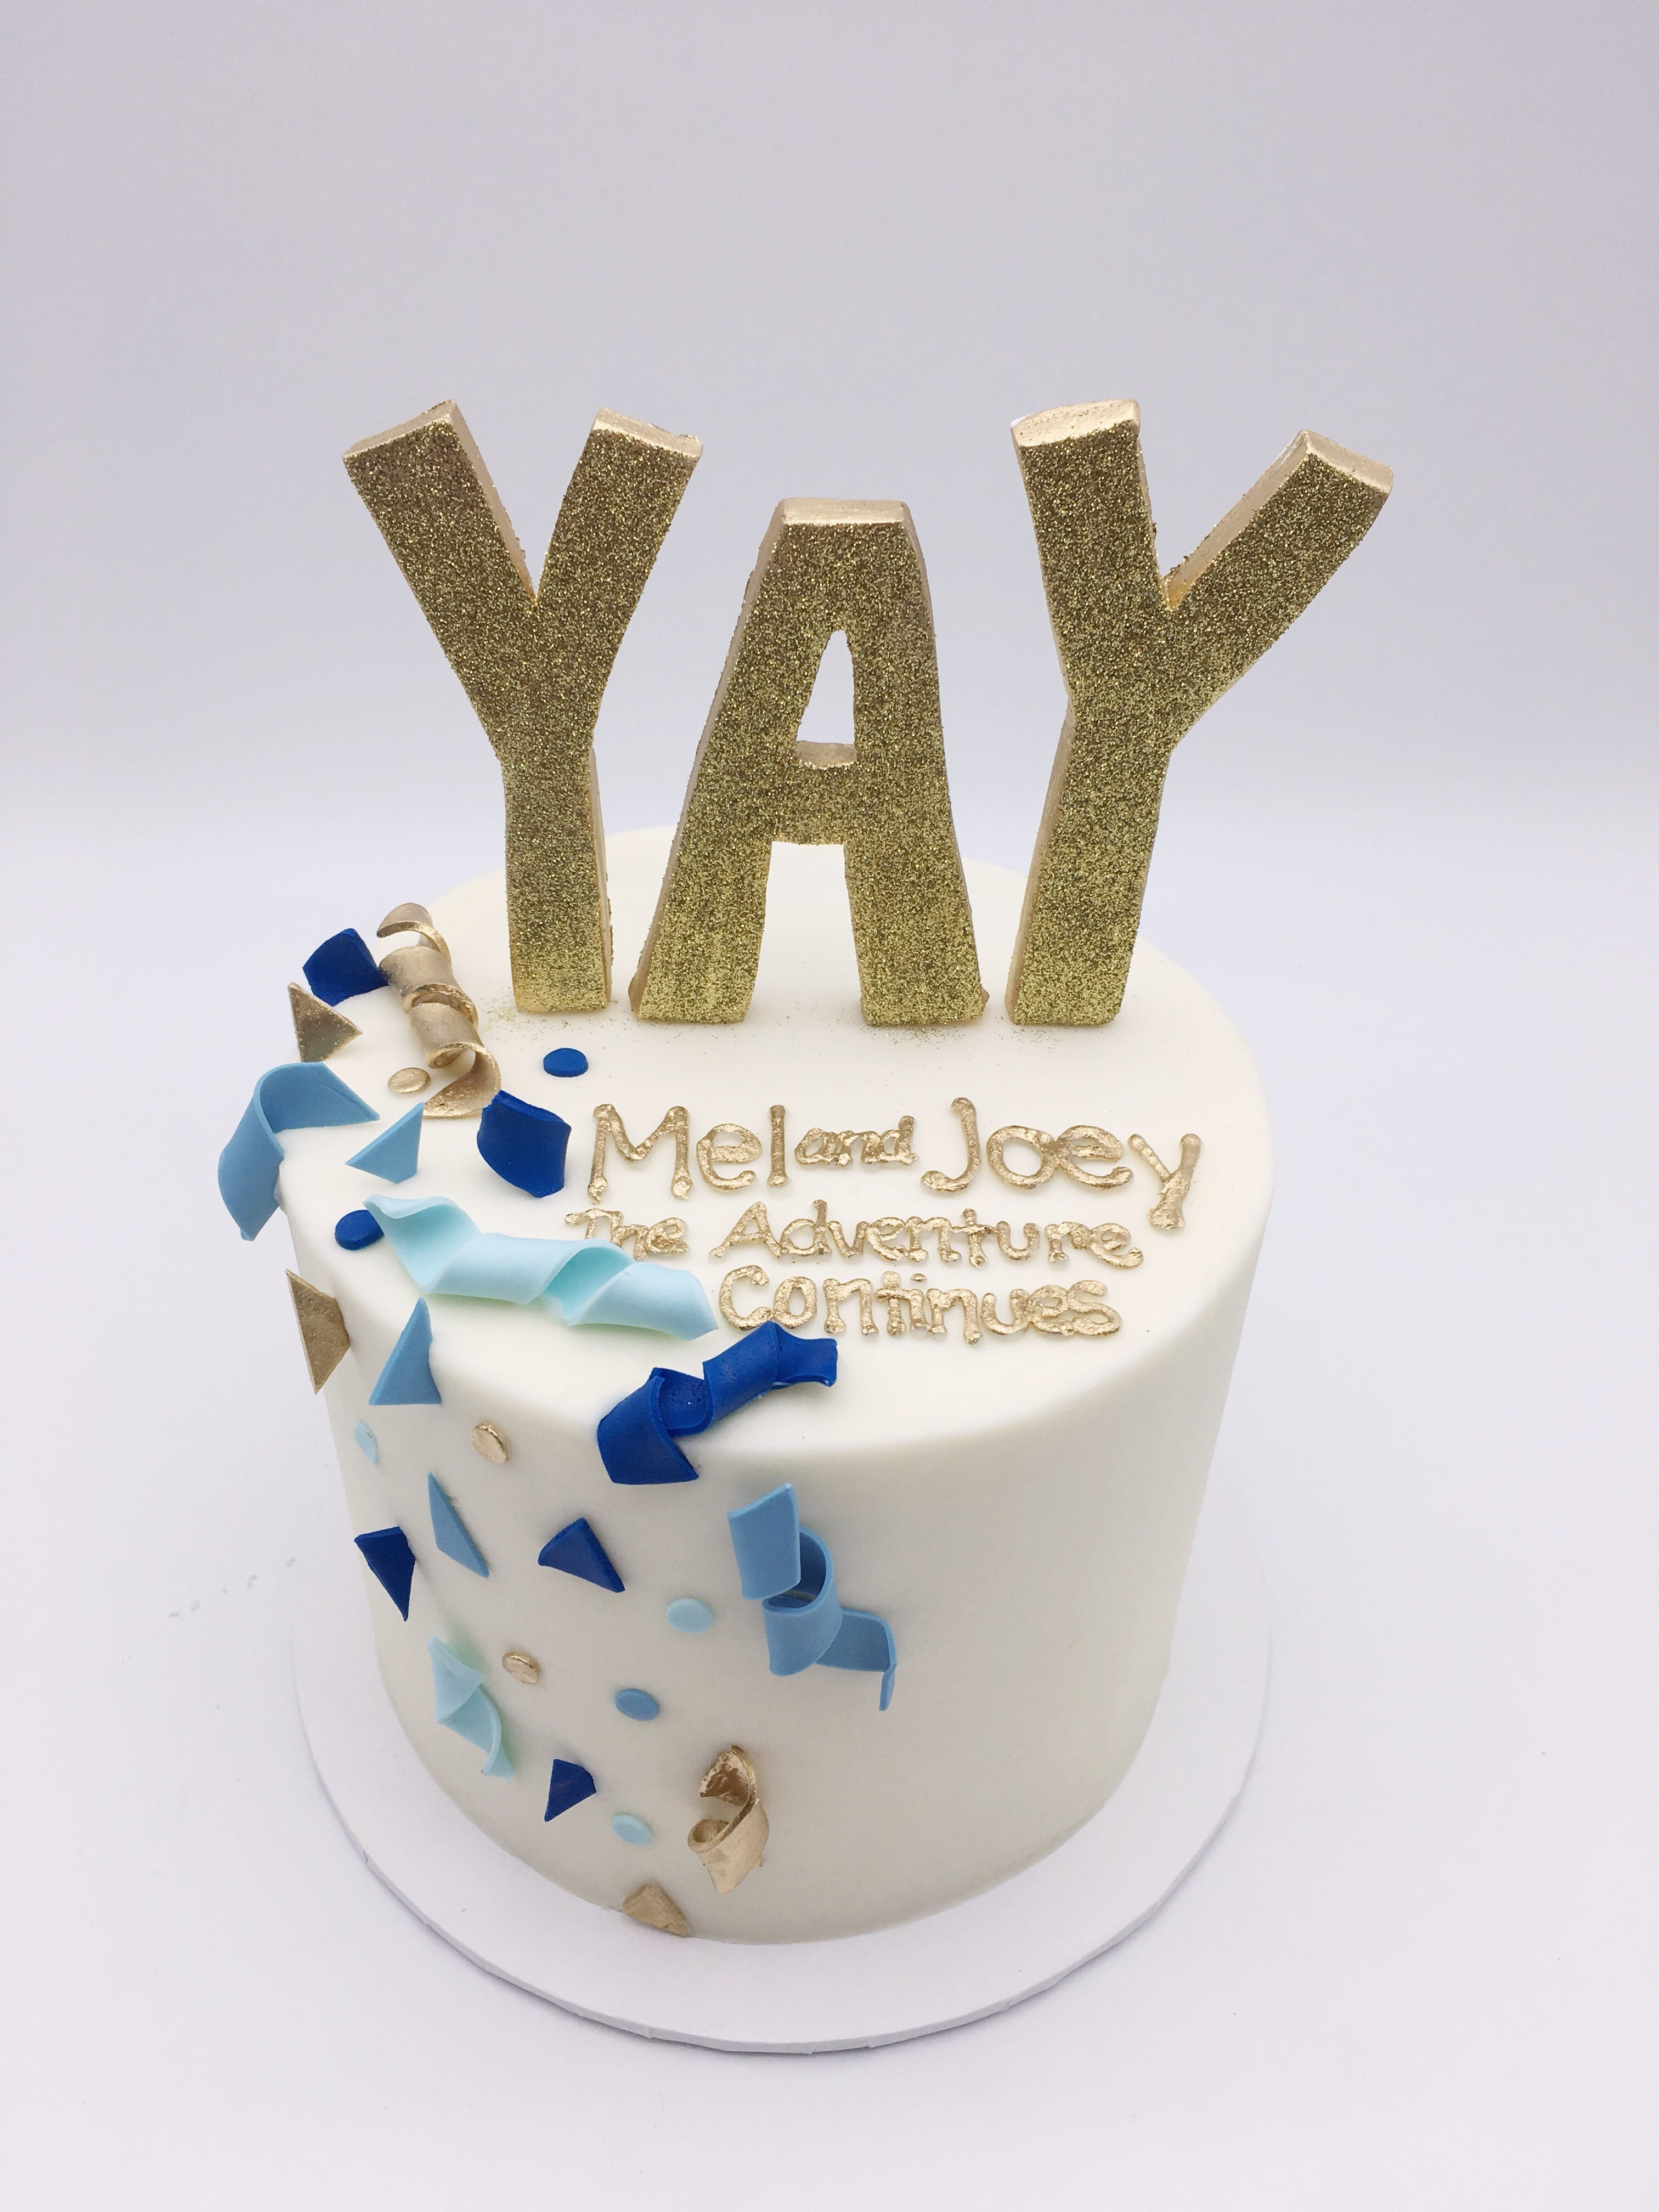 Shades of Blue and Gold YAY Cake | 3 Sweet Girls Cakery